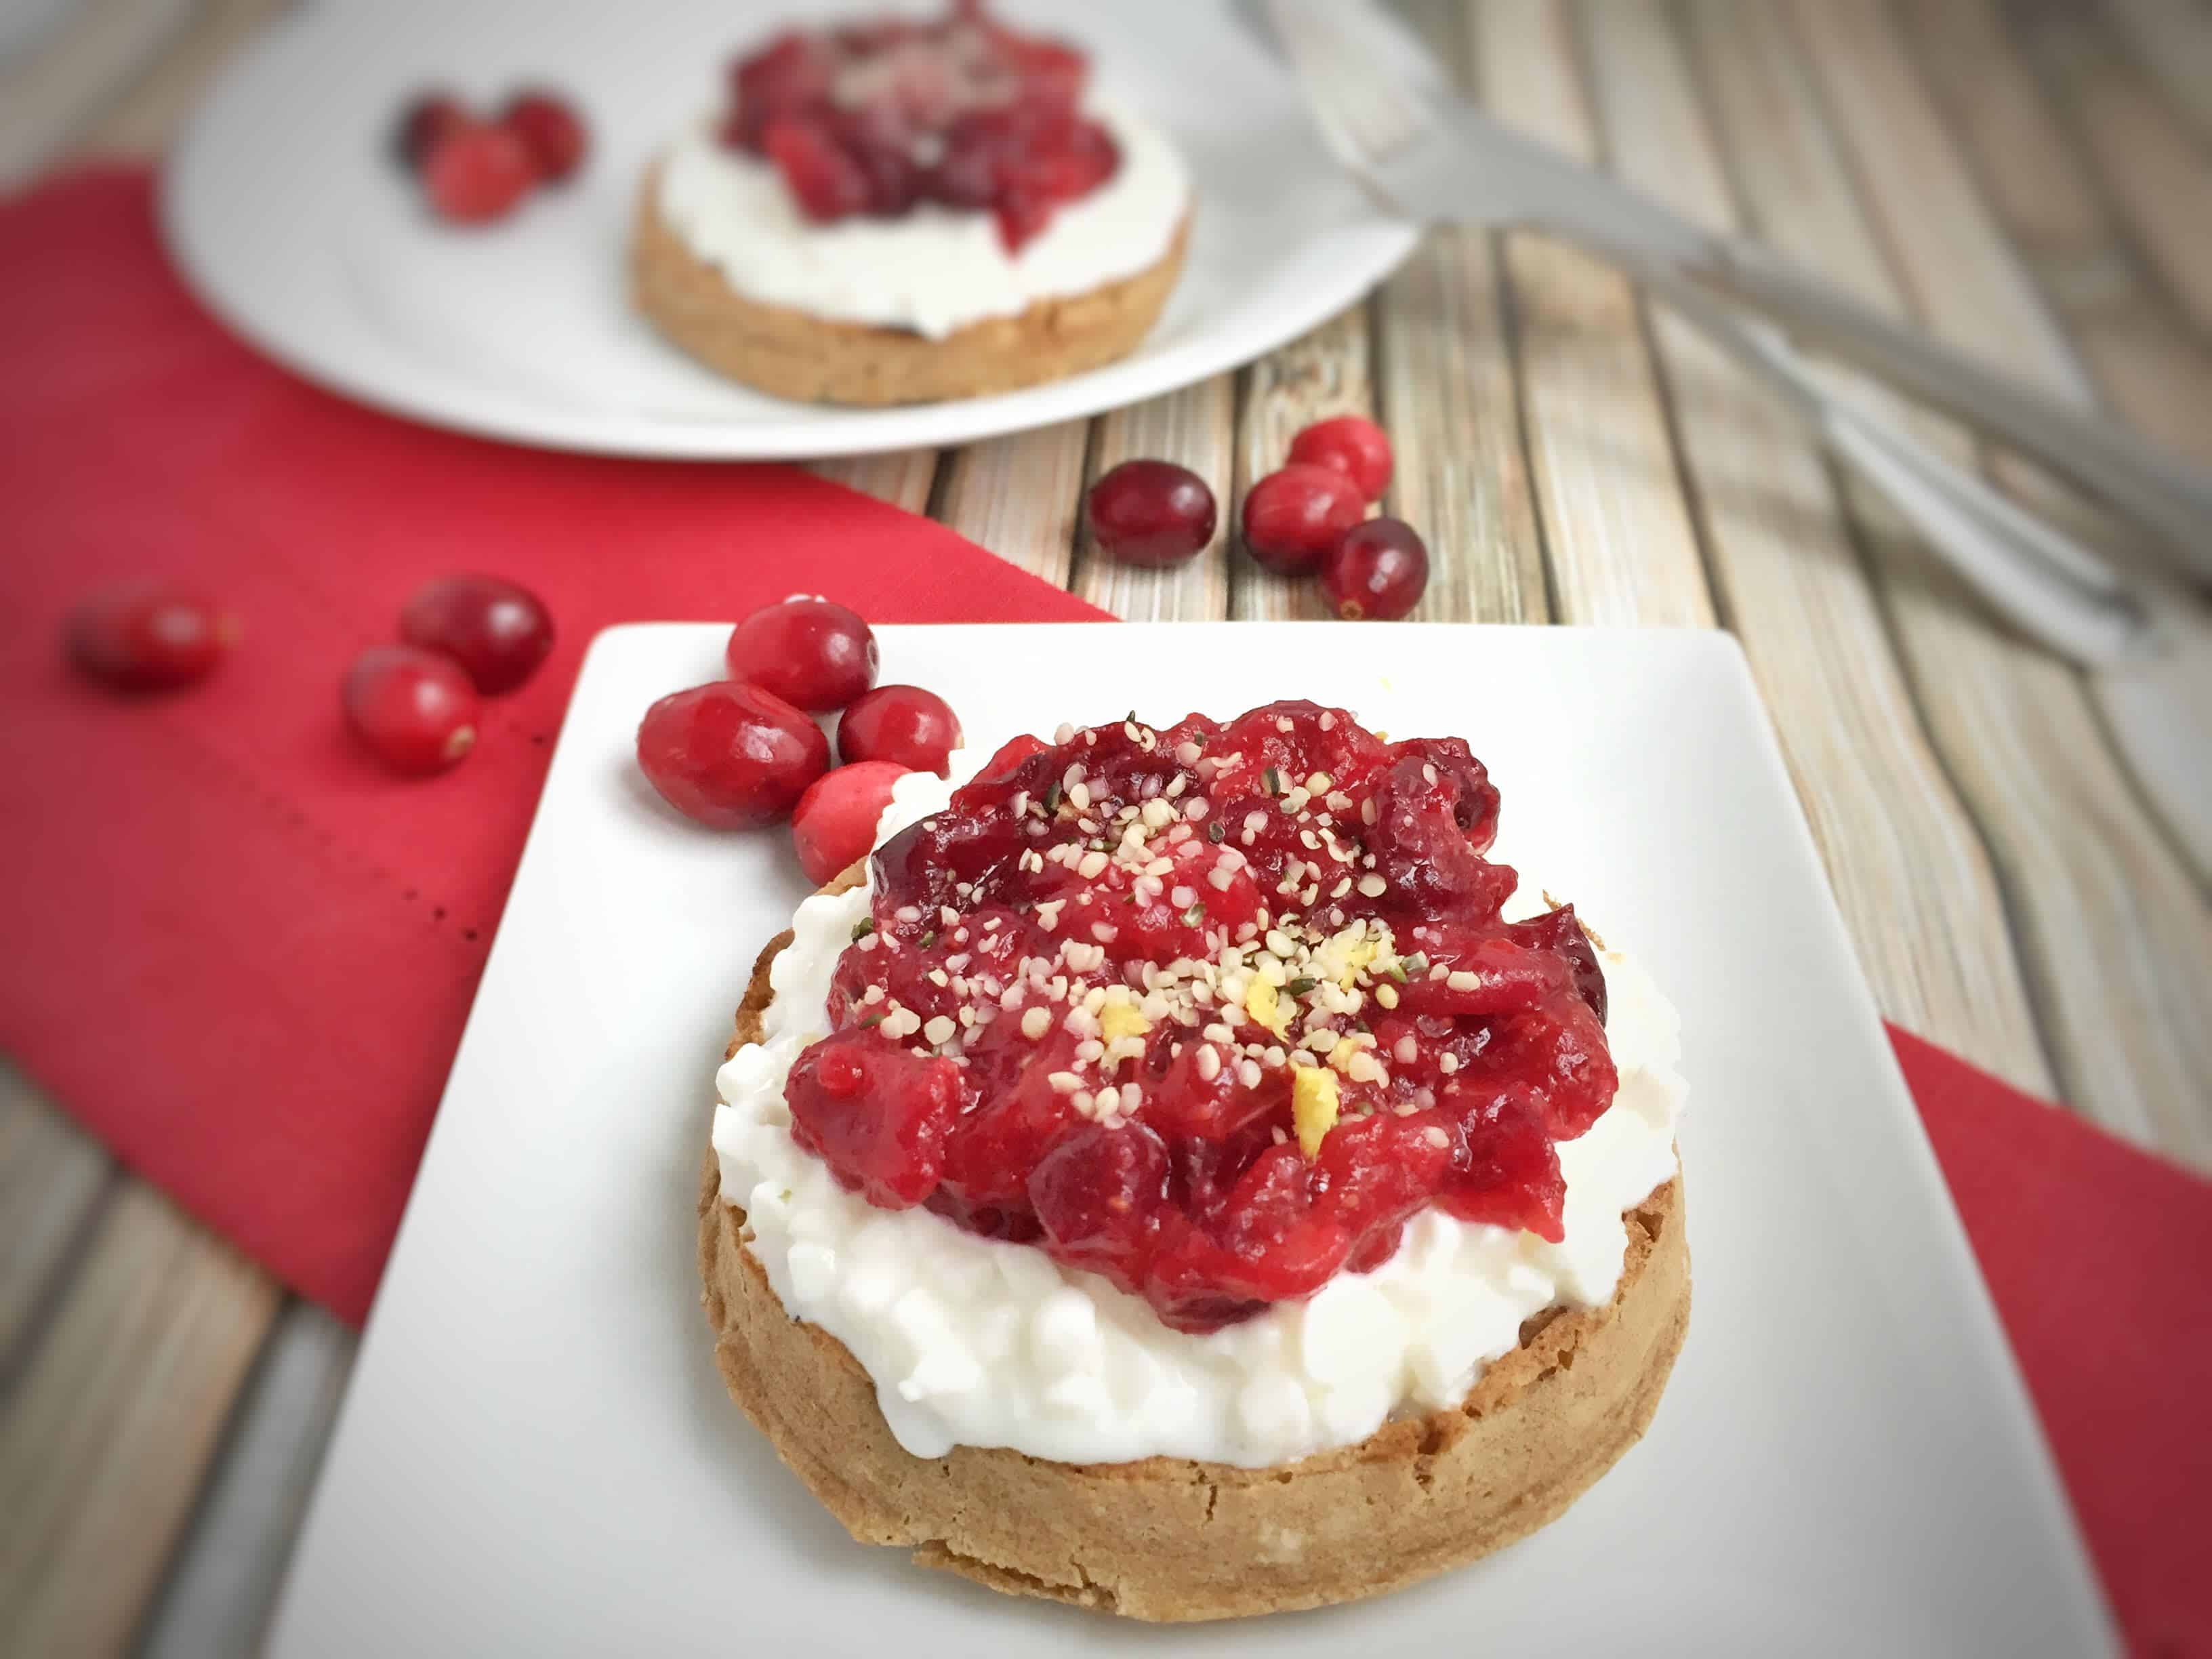 cranberry-compote-with-whole-grain-waffles-blurred